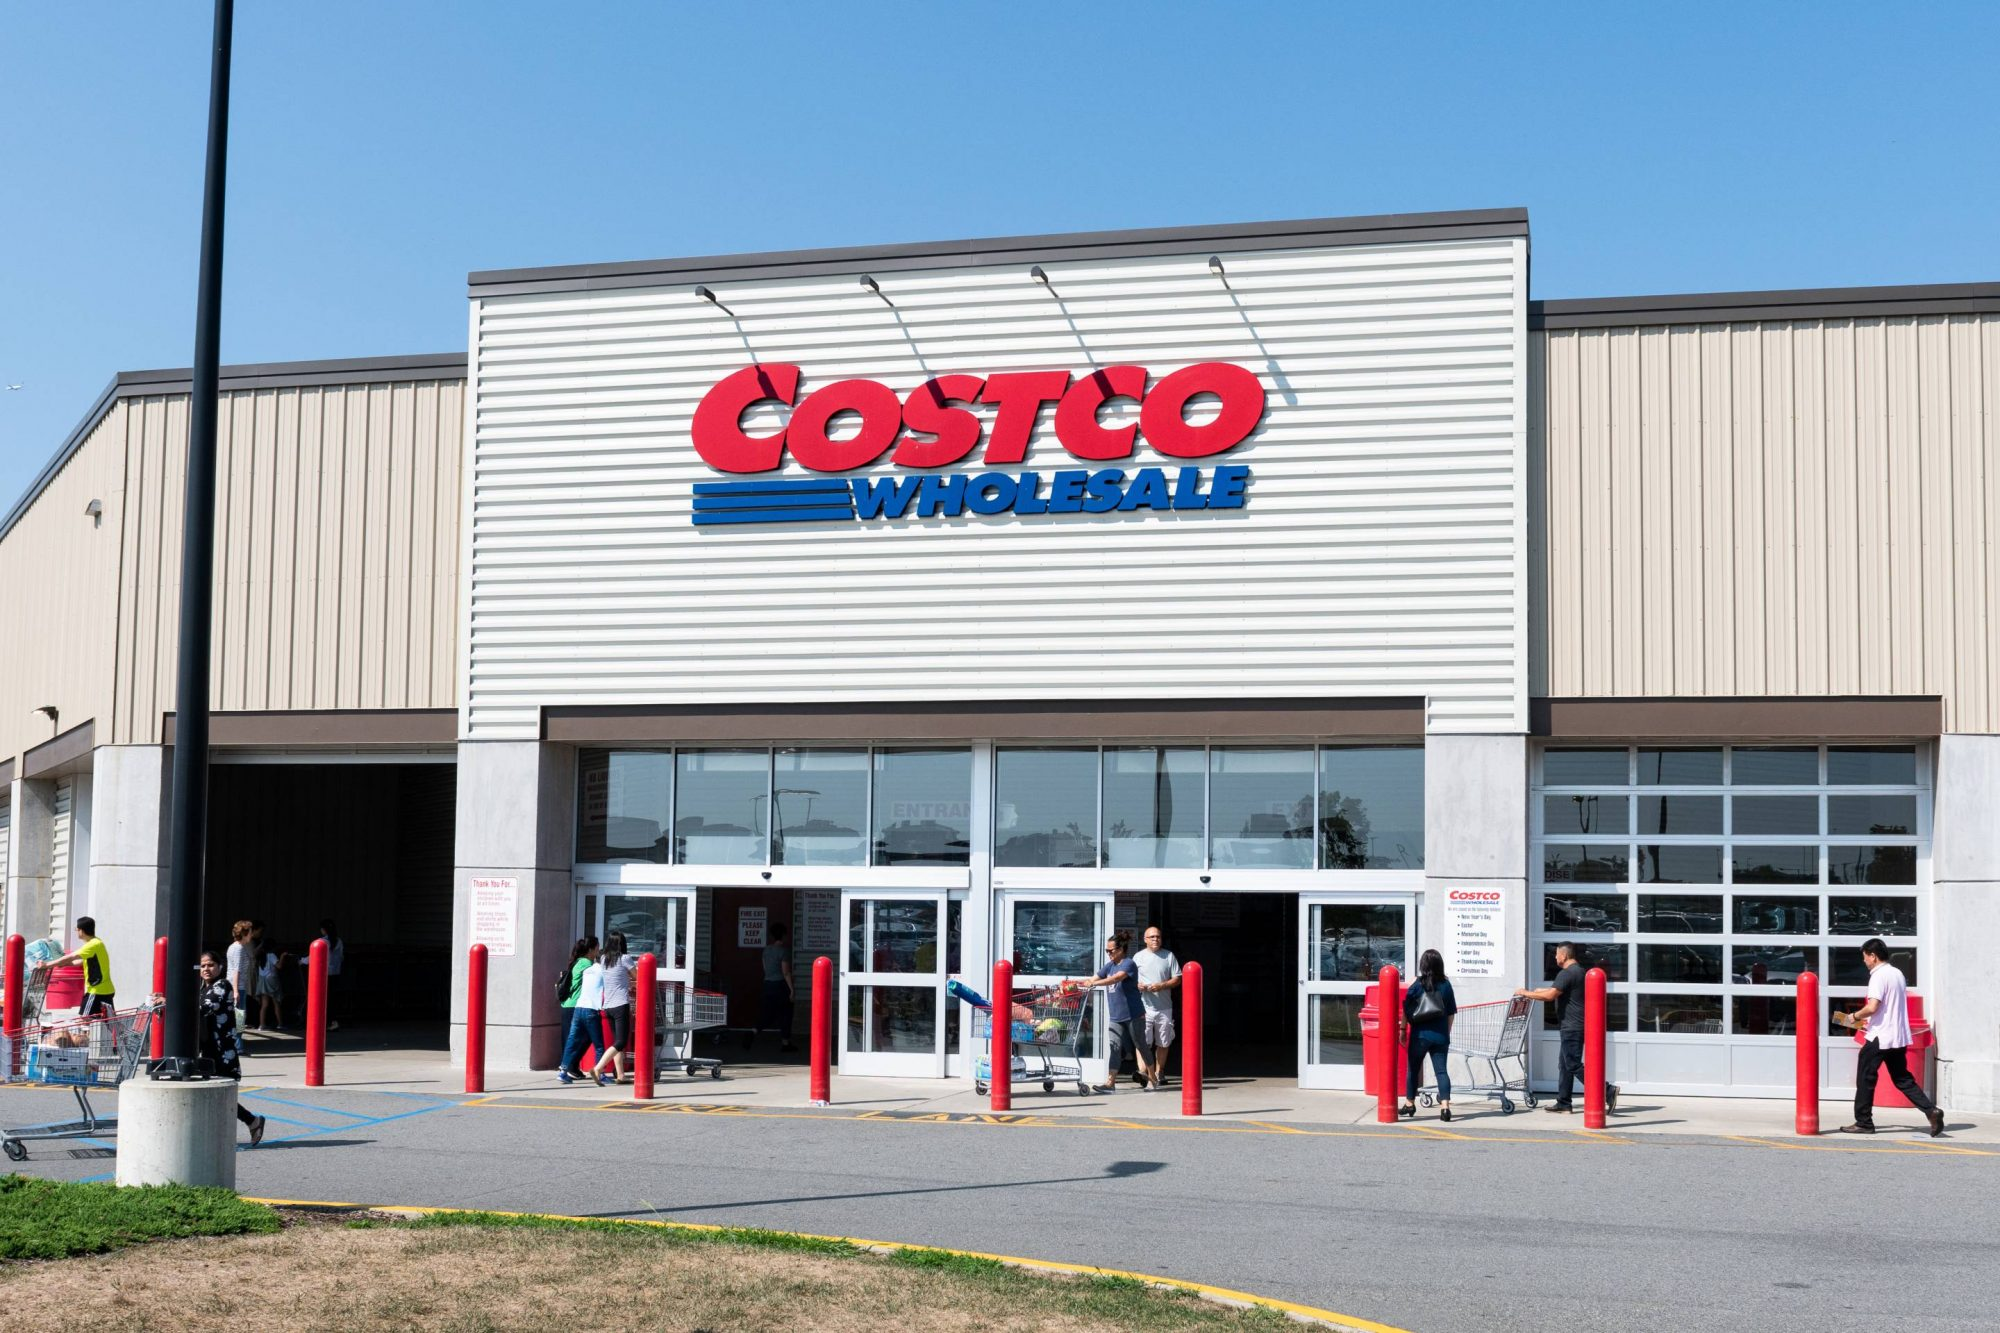 Costco store in Teterboro, New Jersey